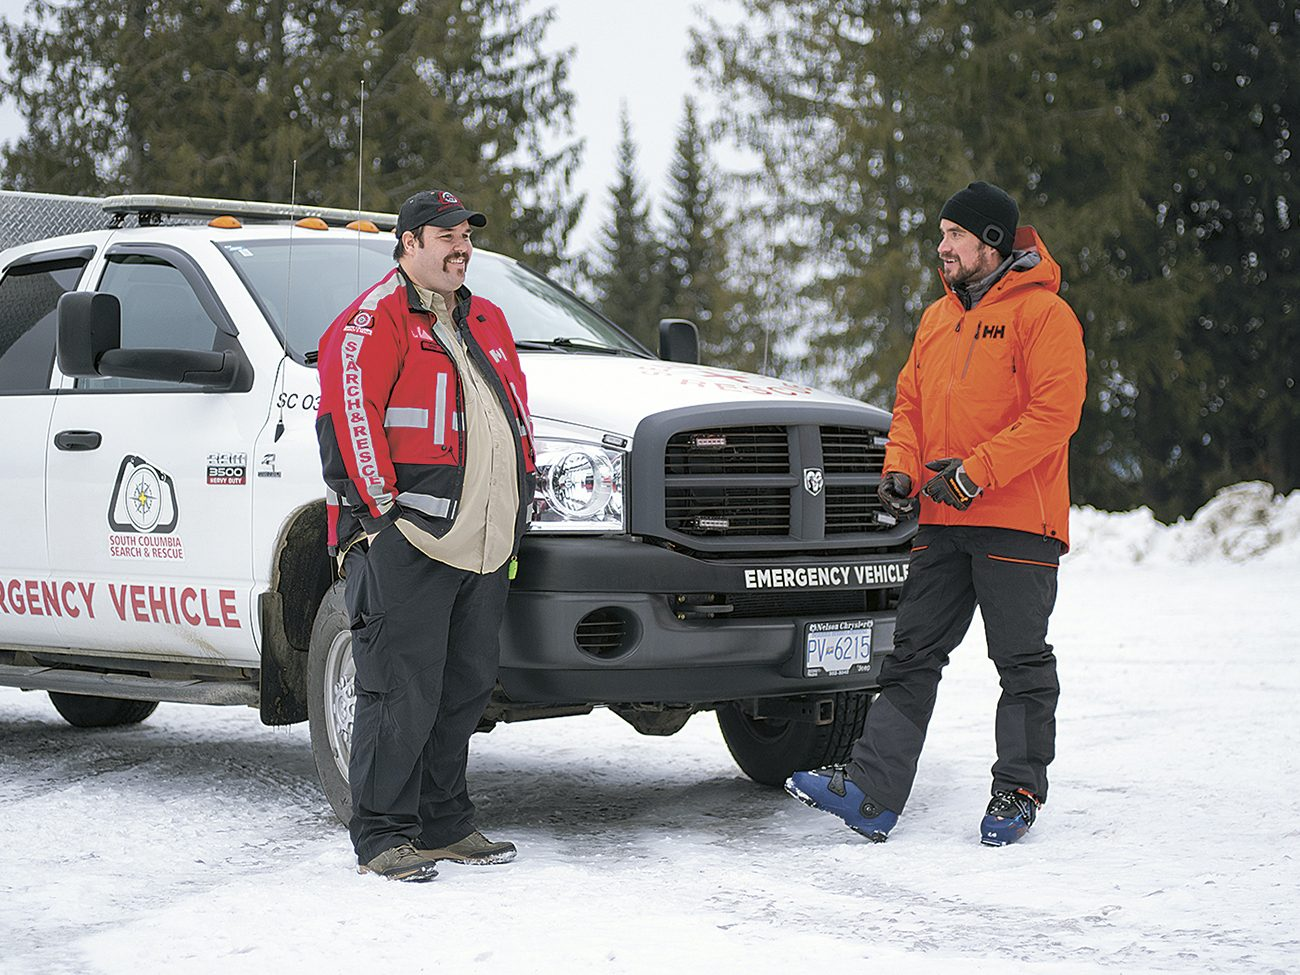 After his ordeal, Gayowski began training to join a search-and-rescue team